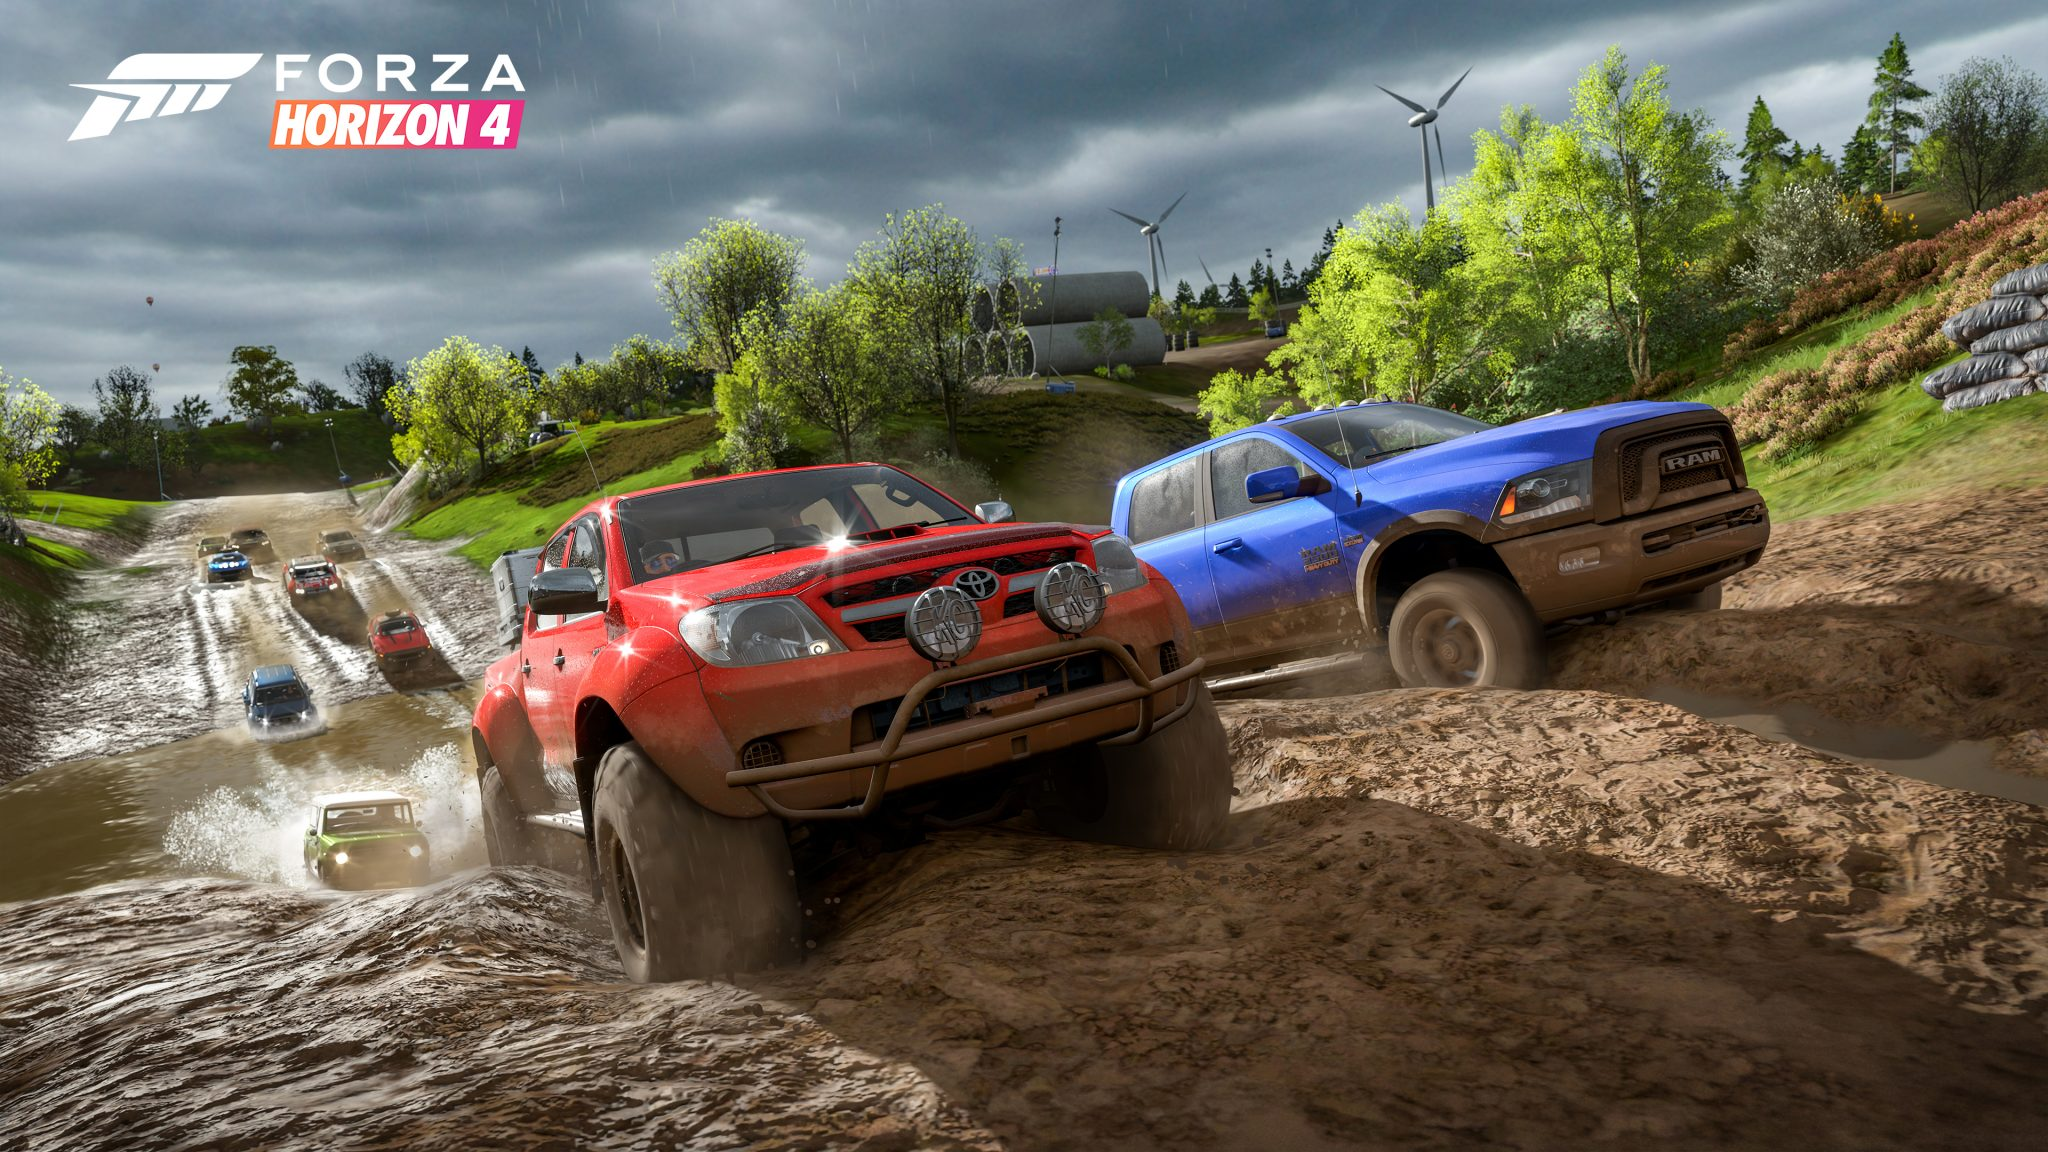 Forza Horizon 4 FH4 Xbox One X PC Ultimate Review Test Kritik Schlamm